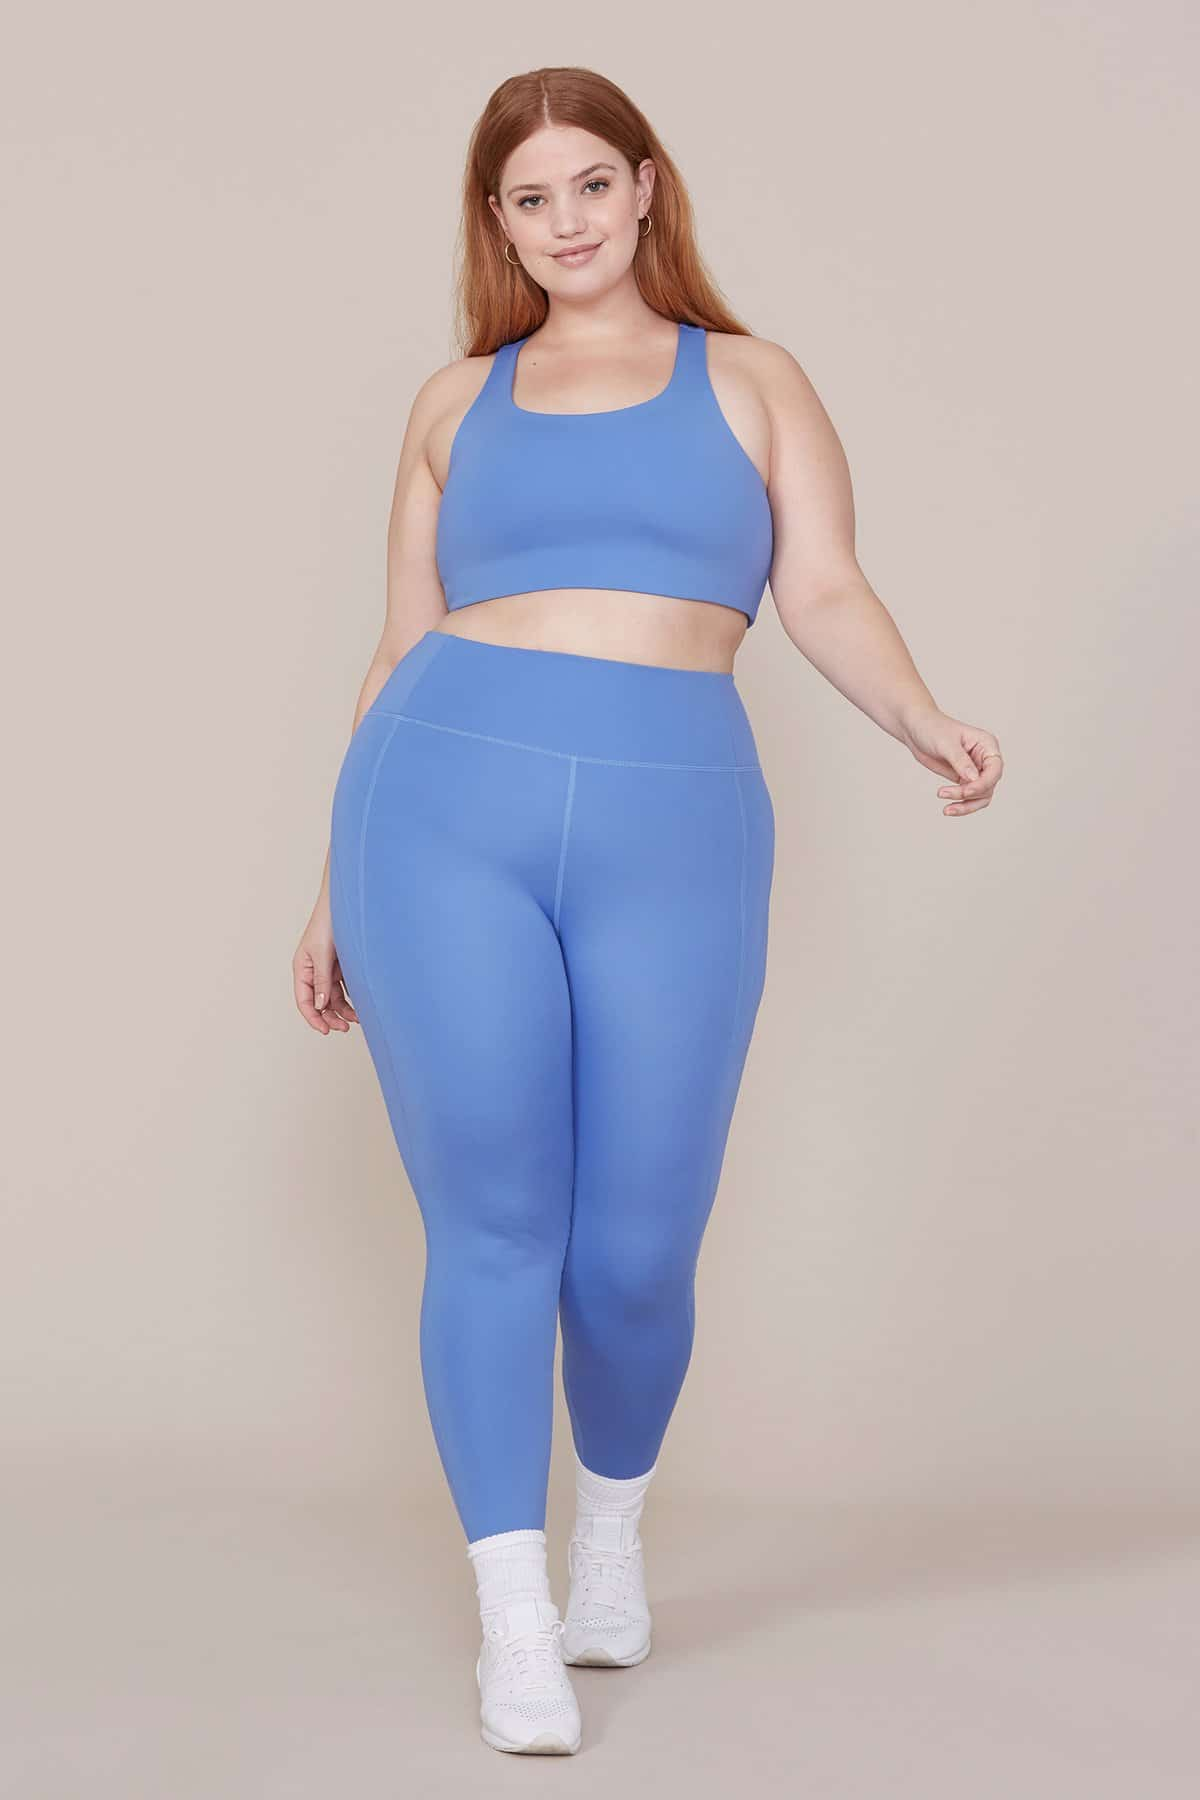 The Best Ethical and Eco-Friendly Brands for Activewear and